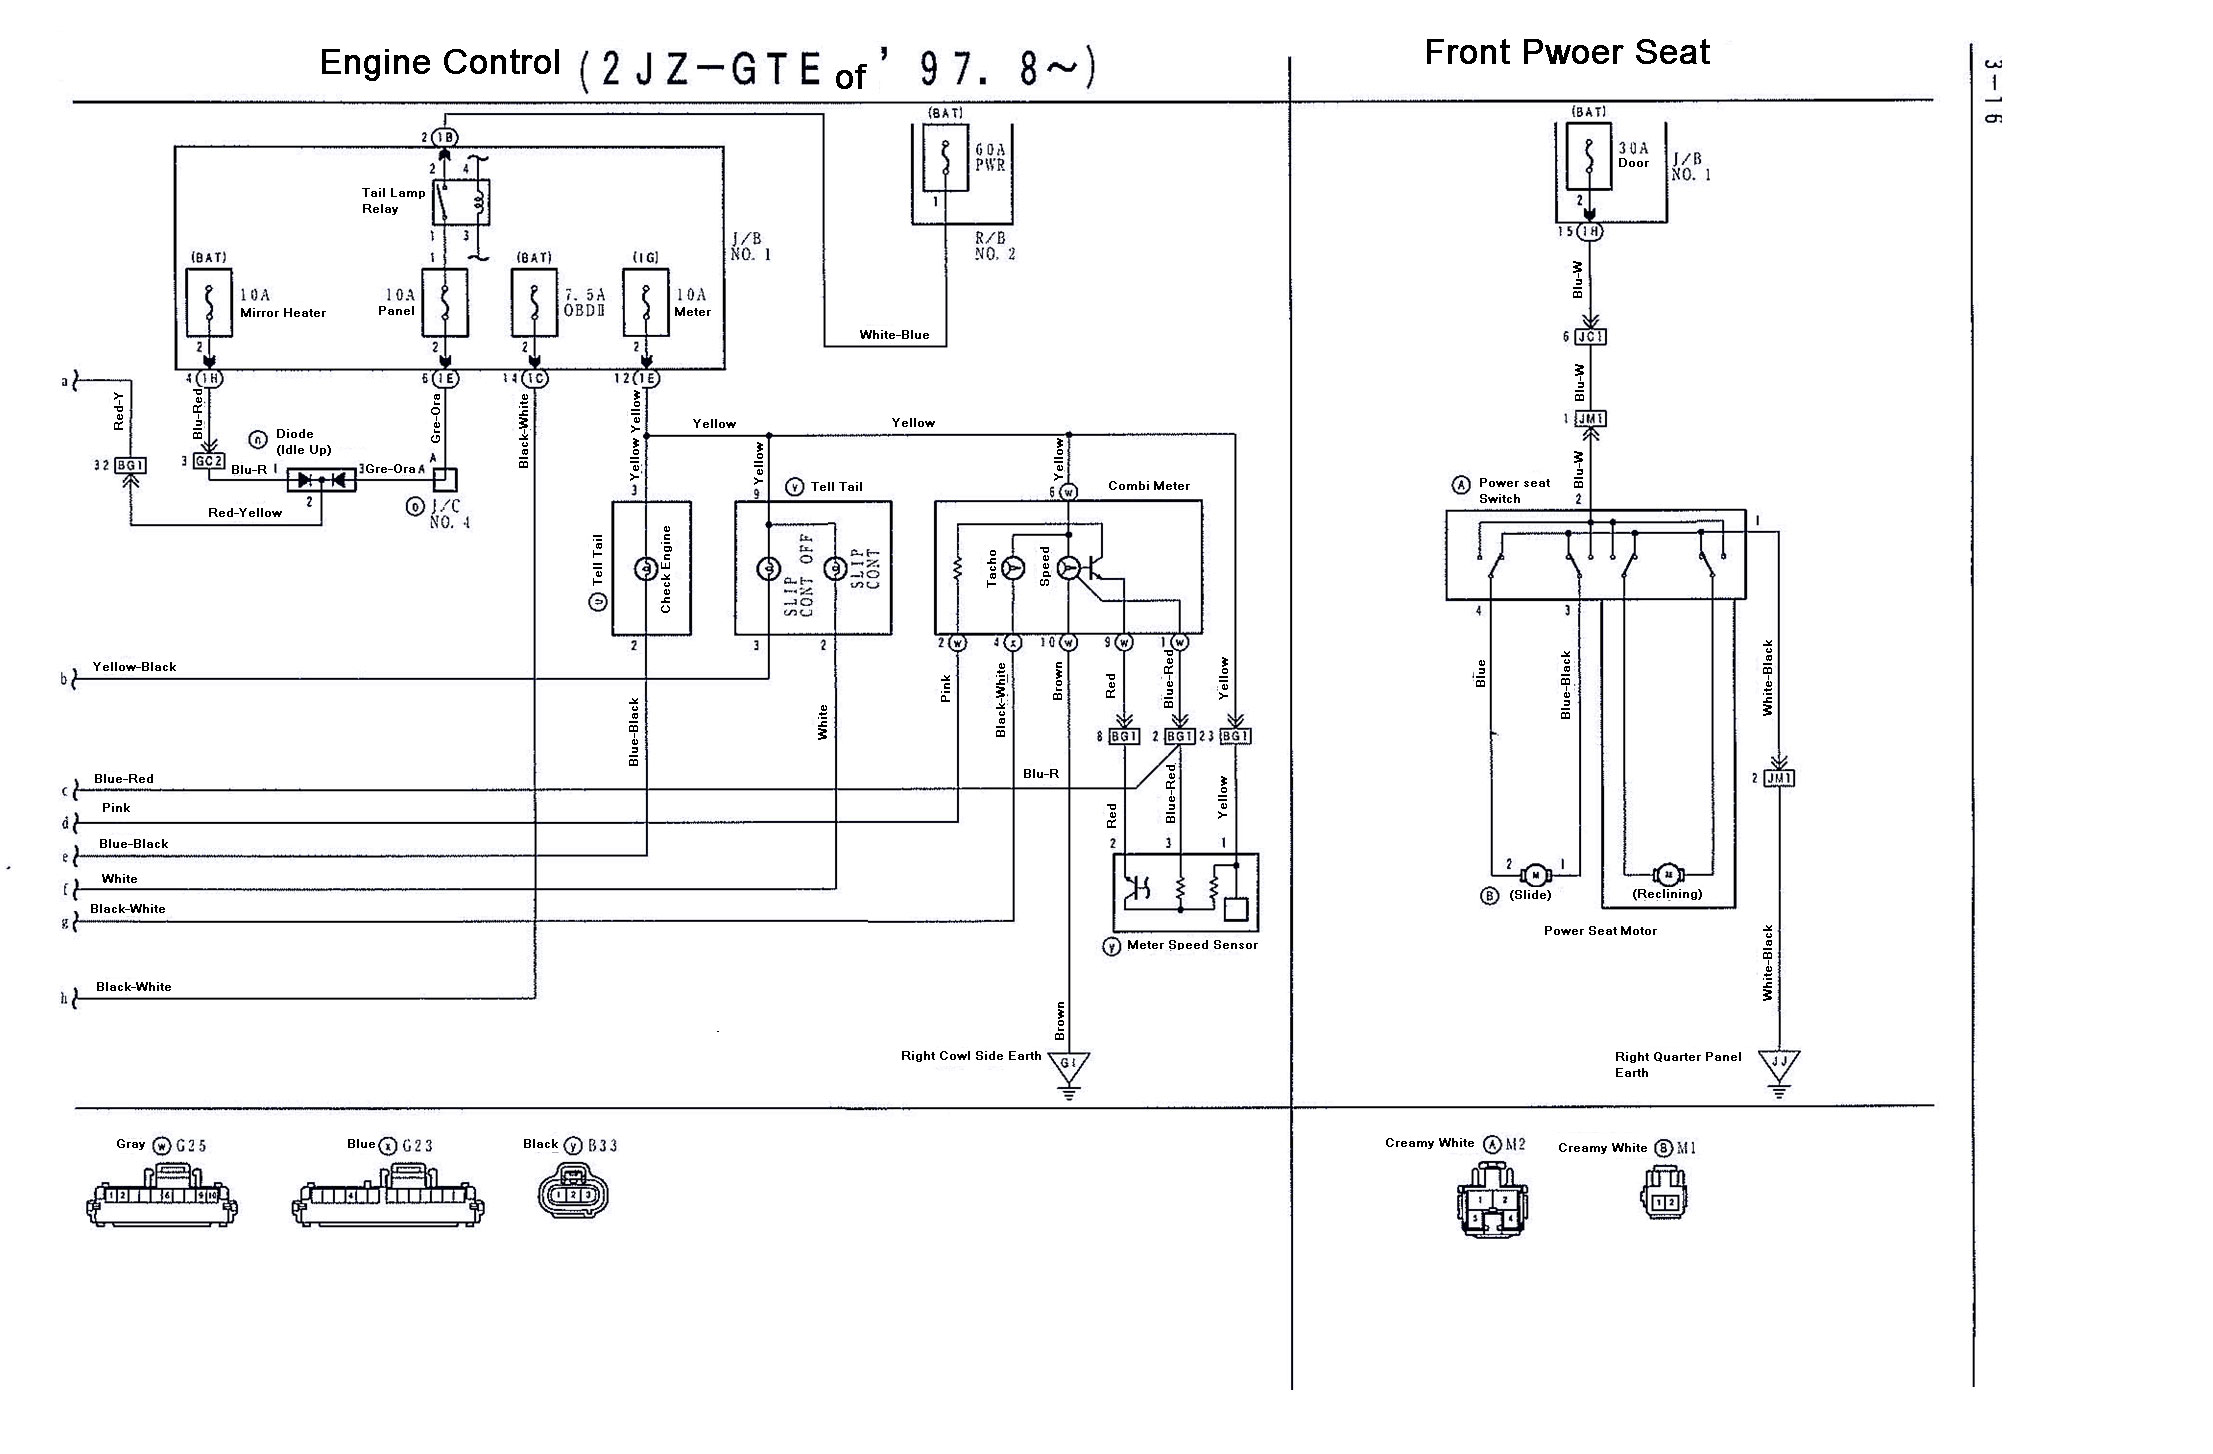 supra 2jzgte vvti wiring diagrams (97 8 02) 2jzgarage 2jzgte wiring diagram disclaimer i don't take any responsibility for these diagrams, these are referenced off 2 different diagrams i have of the 2jzgte vvti and some are in